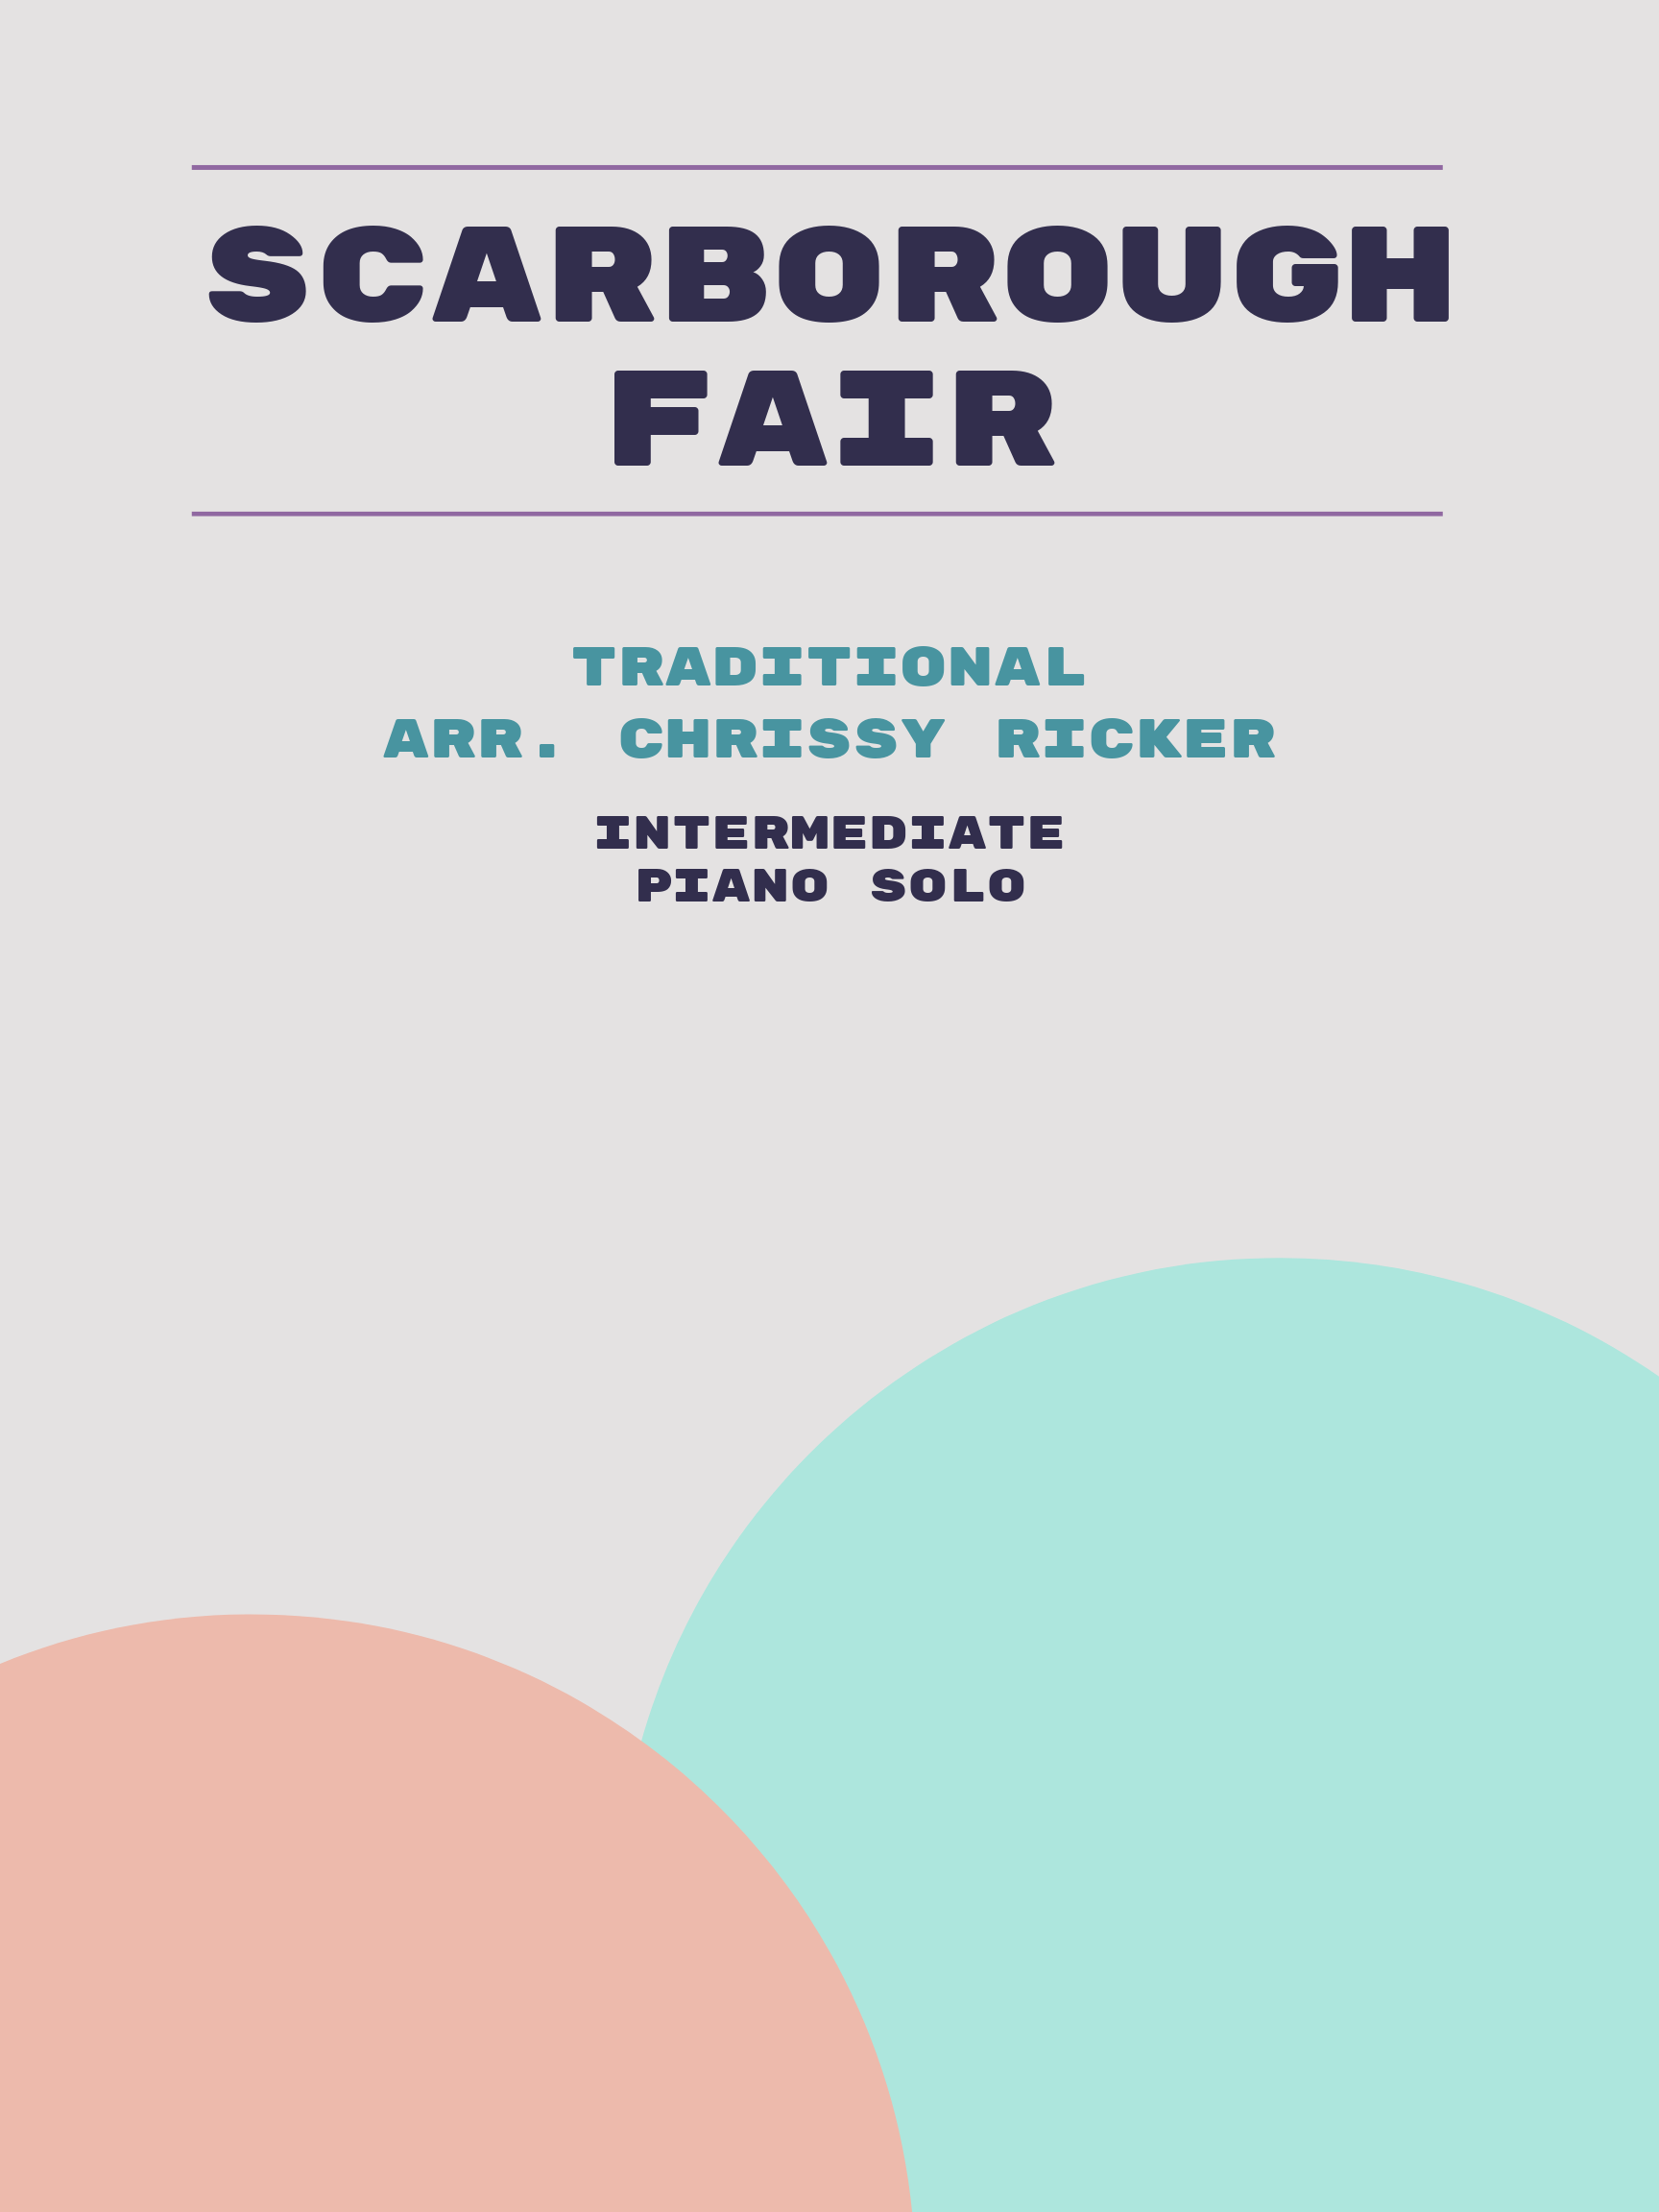 Scarborough Fair by Traditional